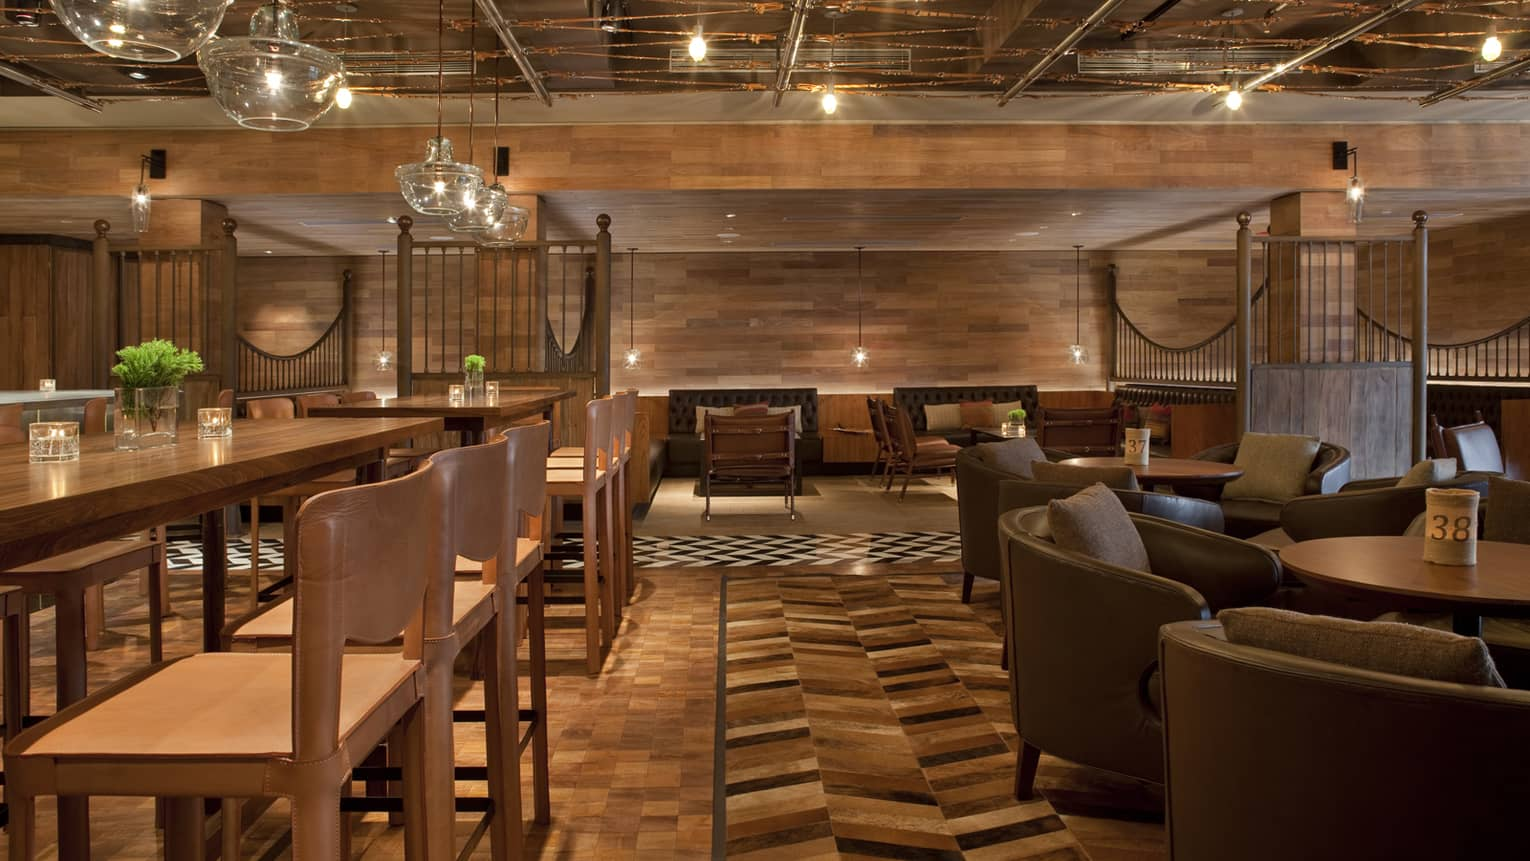 Pony Line lounge with rich brown wood flooring and walls over tables with stools, leather chairs, glass chandeliers